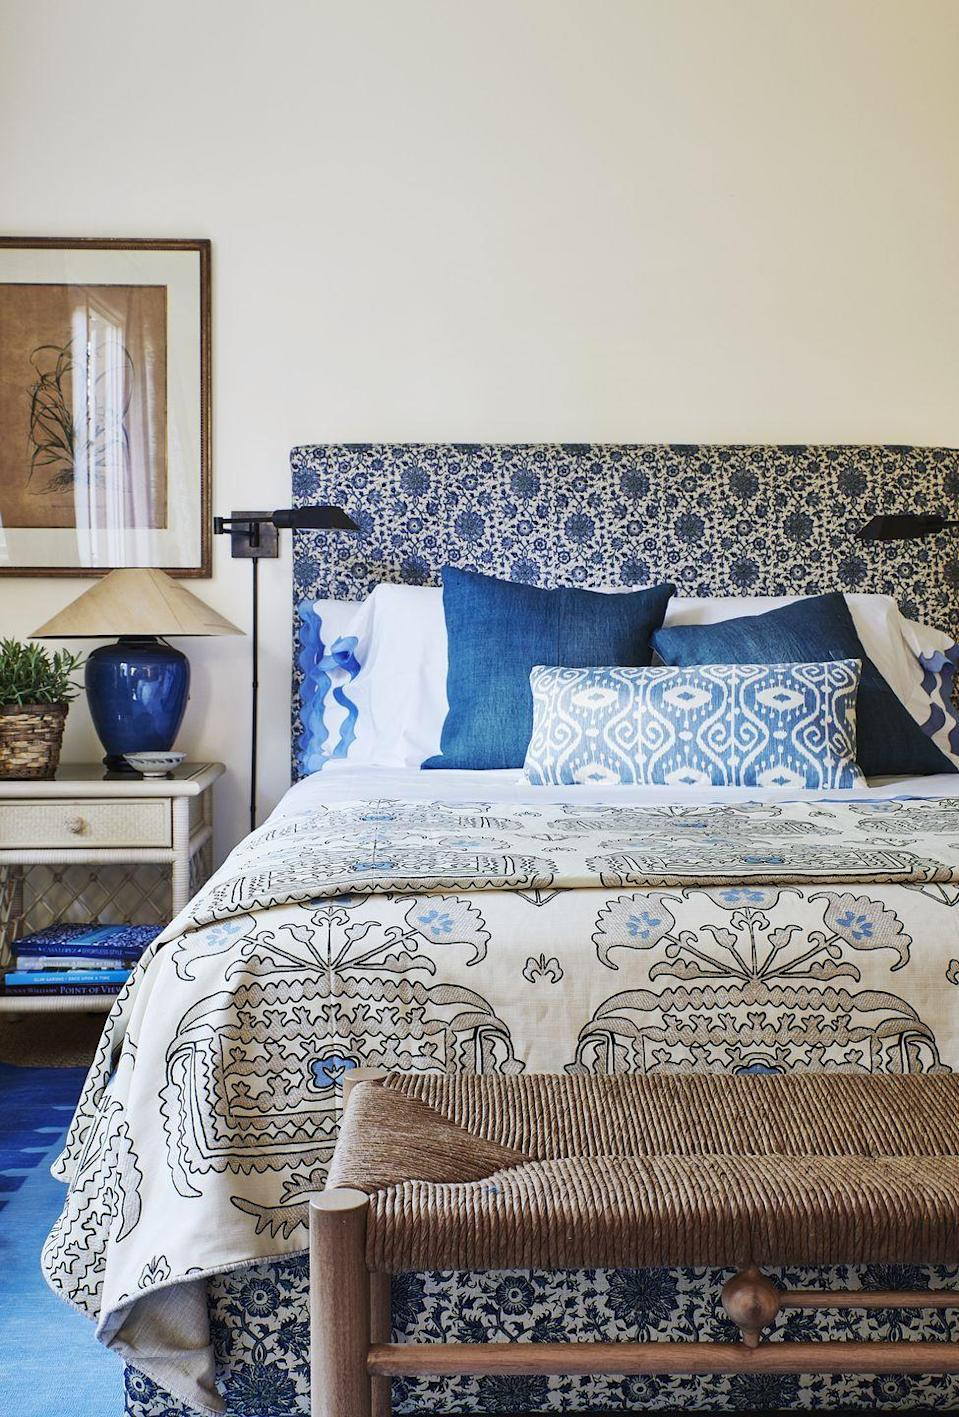 "<p>This well-collected guest bedroom in <a href=""https://www.veranda.com/decorating-ideas/house-tours/a34244492/mark-sikes-california-house-tour-2020/"" rel=""nofollow noopener"" target=""_blank"" data-ylk=""slk:fashion designer Karen Kane's Pacific Palisades manse"" class=""link rapid-noclick-resp"">fashion designer Karen Kane's Pacific Palisades manse</a> features ultra-sleek, utilitarian sconces that act as a modern foil to the globally inspired patterns and textures throughout the room. An extra bedside lamp ensures a brighter glow can be achieved when desired. </p>"